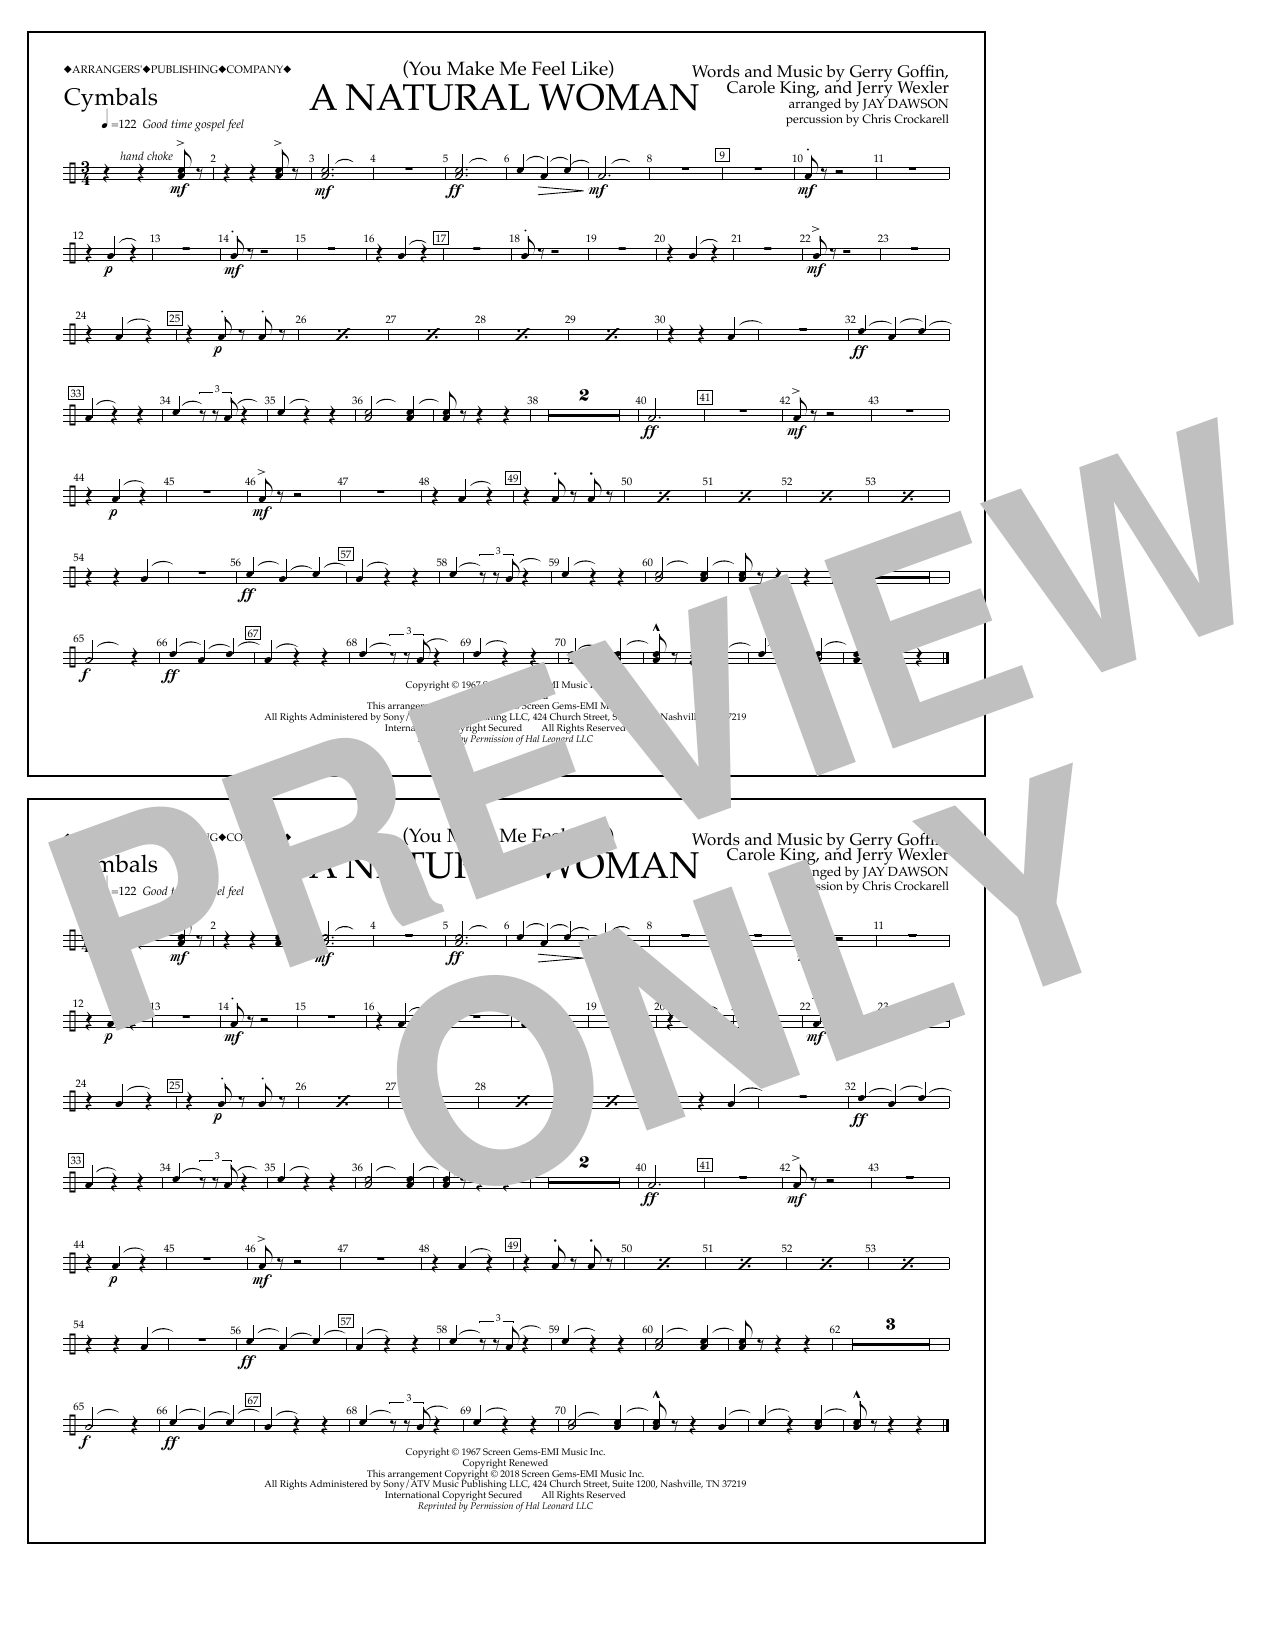 Download Aretha Franklin '(You Make Me Feel Like) A Natural Woman (arr. Jay Dawson) - Cymbals' Digital Sheet Music Notes & Chords and start playing in minutes